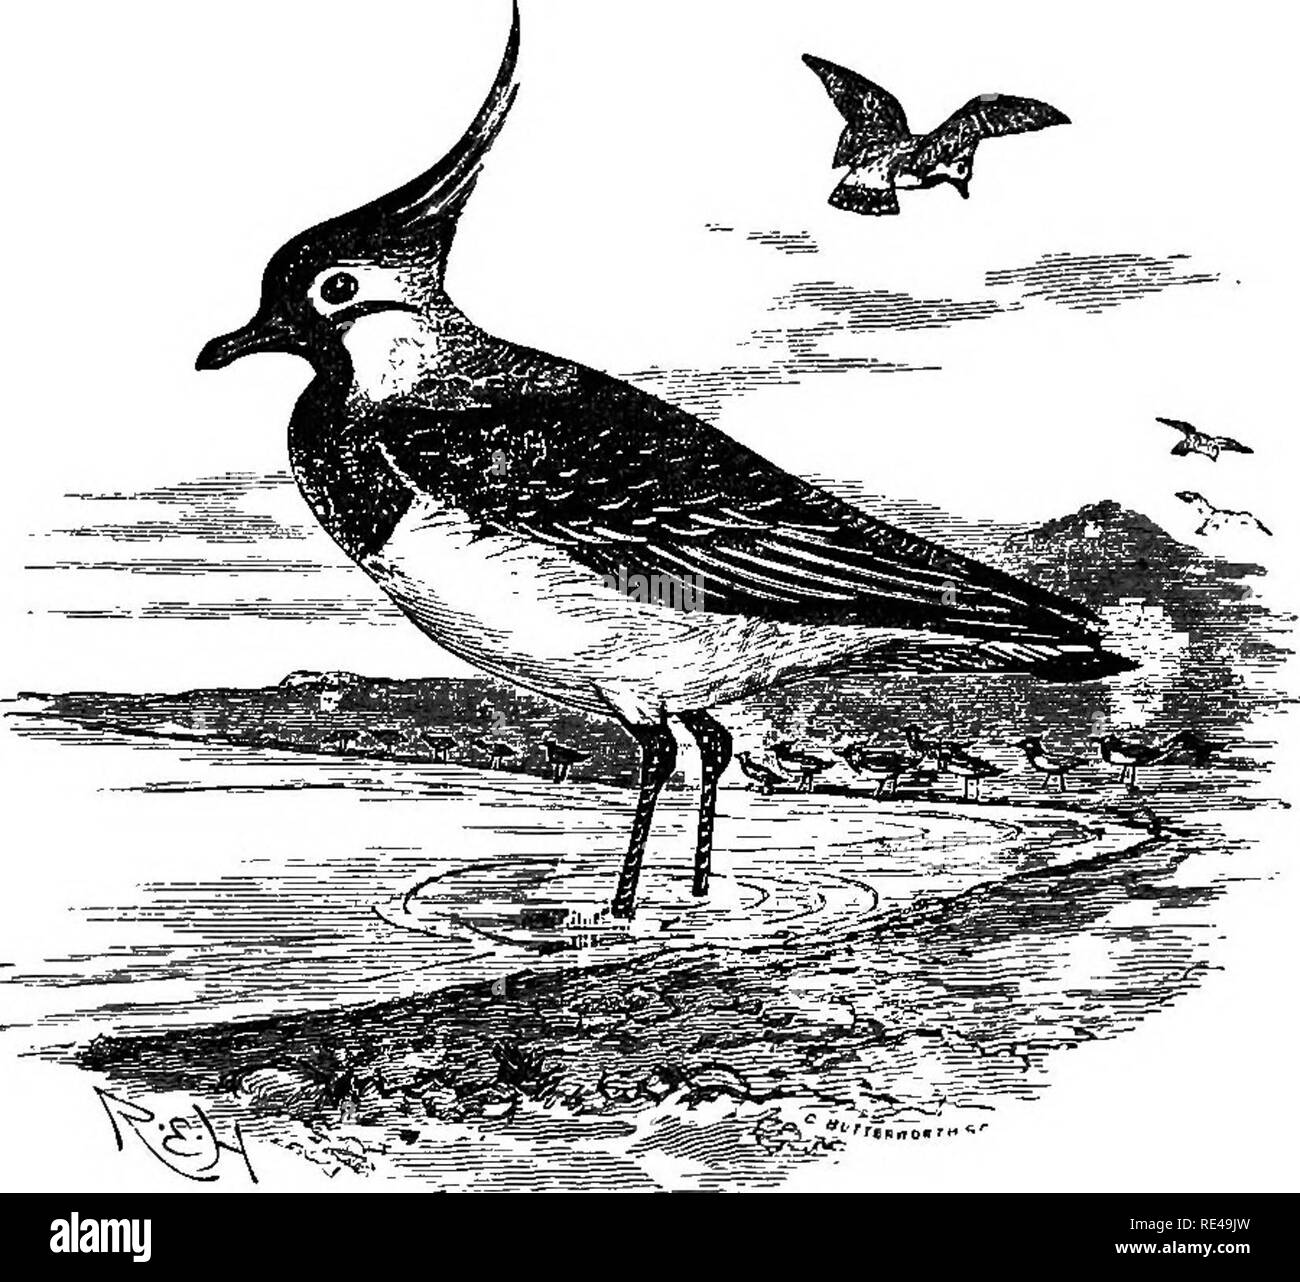 . The geographical distribution of the family Charadriidae, or, The plovers, sandpipers, snipes, and their allies . Shore birds. 210 VANELLUS. *^* Suhgeneric group Vanelli: with a hind toe but no spur. f Old- World Species.. VANELLUS CRISTATUS. COMMON LAPWING. Diagnosis. Vanellus supracaudalibus et subcaudalibus rufis : subalaribus nigris. Variations. Synonymy. Literature. Although the Common Lapwing is subject to considerable individual variation, especially in the amount of black on the throat and on the tail, it is impossible to distinguish examples from China and Japan from others obtained - Stock Image